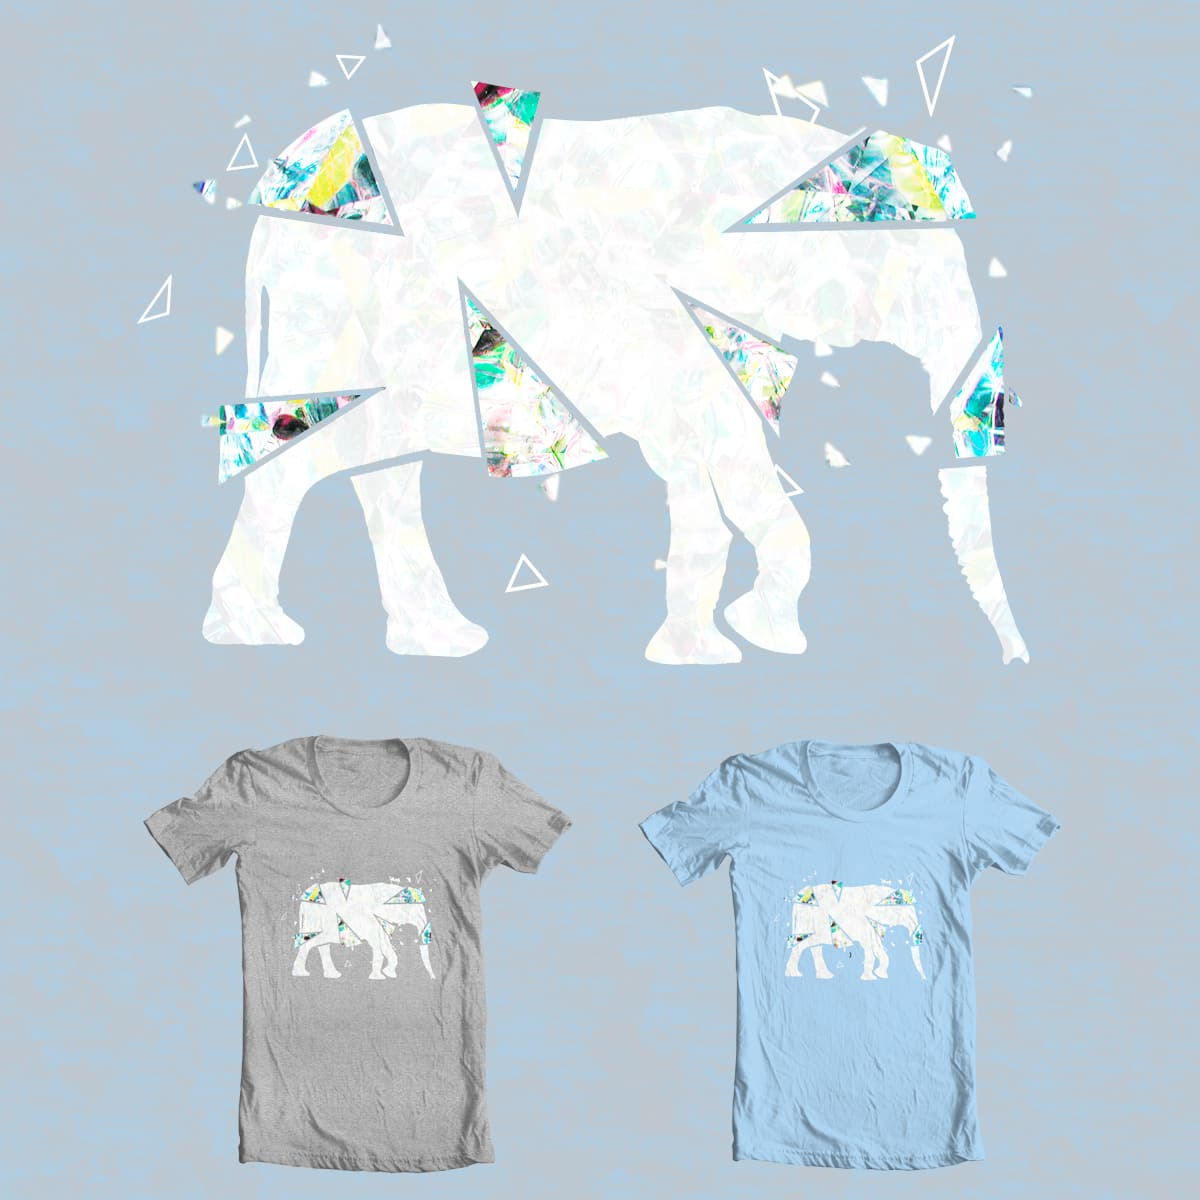 Motion by Evan_Luza on Threadless